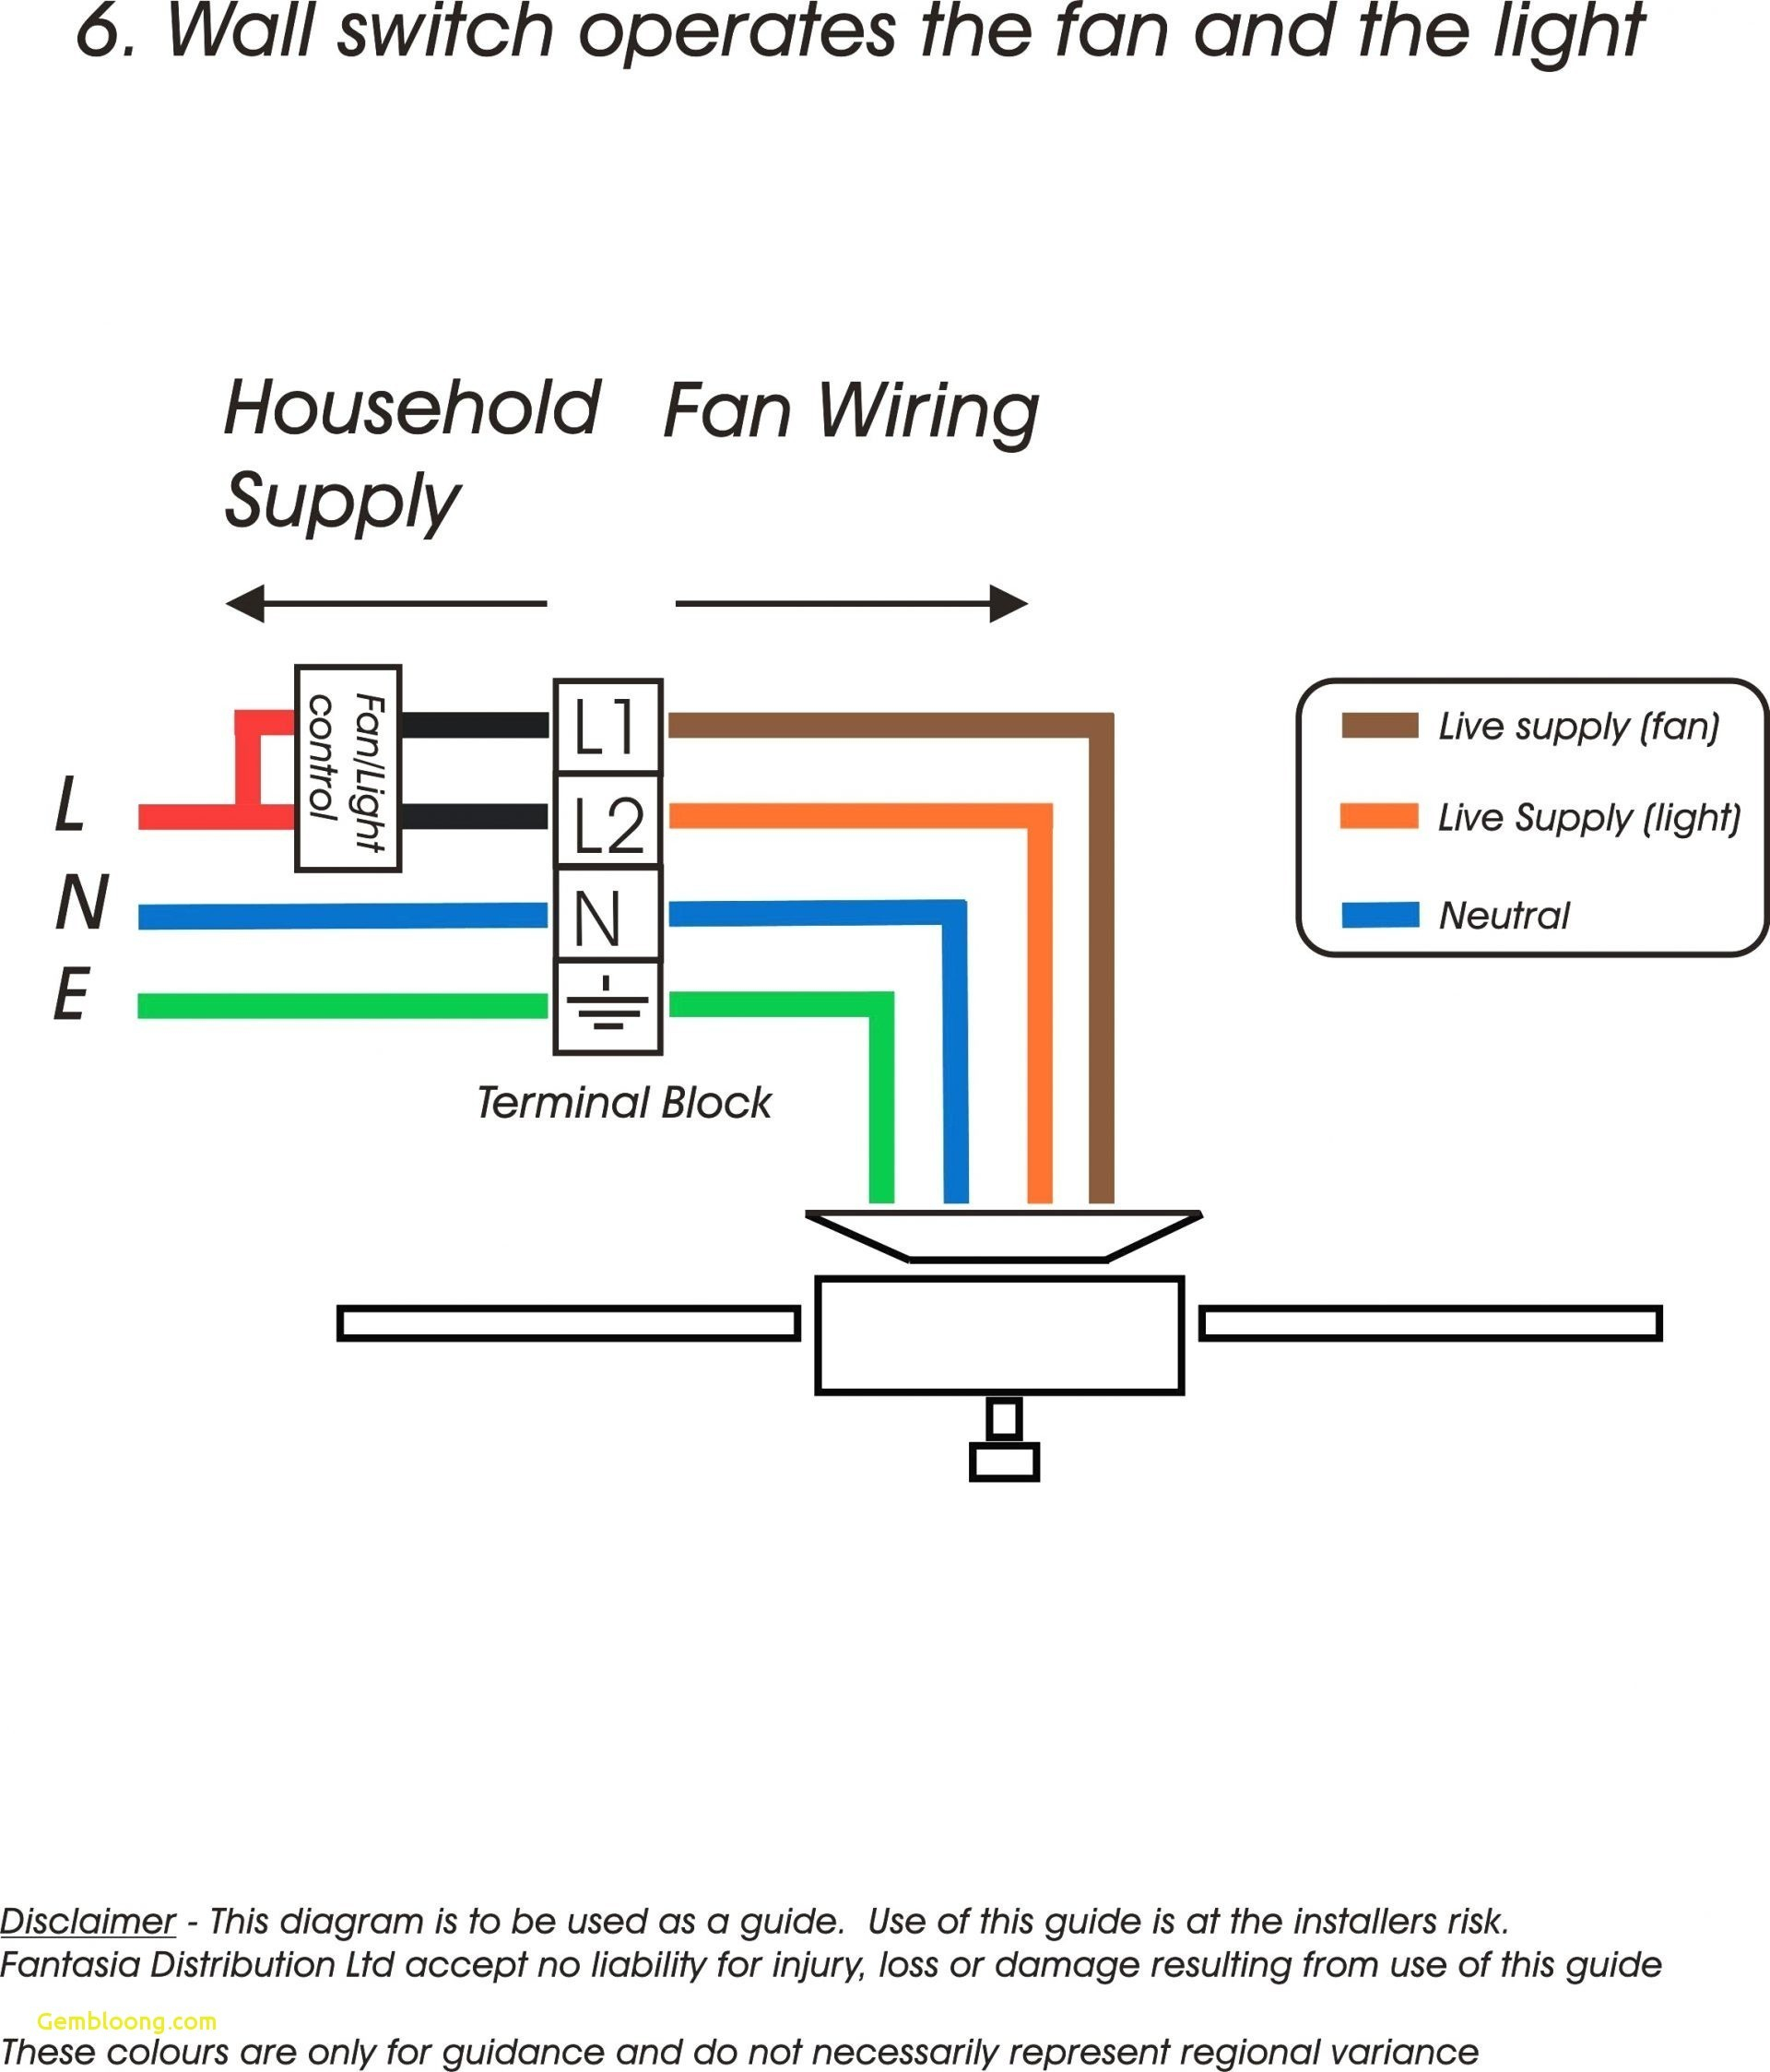 Cat6e Wiring Diagram : Cat e wiring diagram download sample